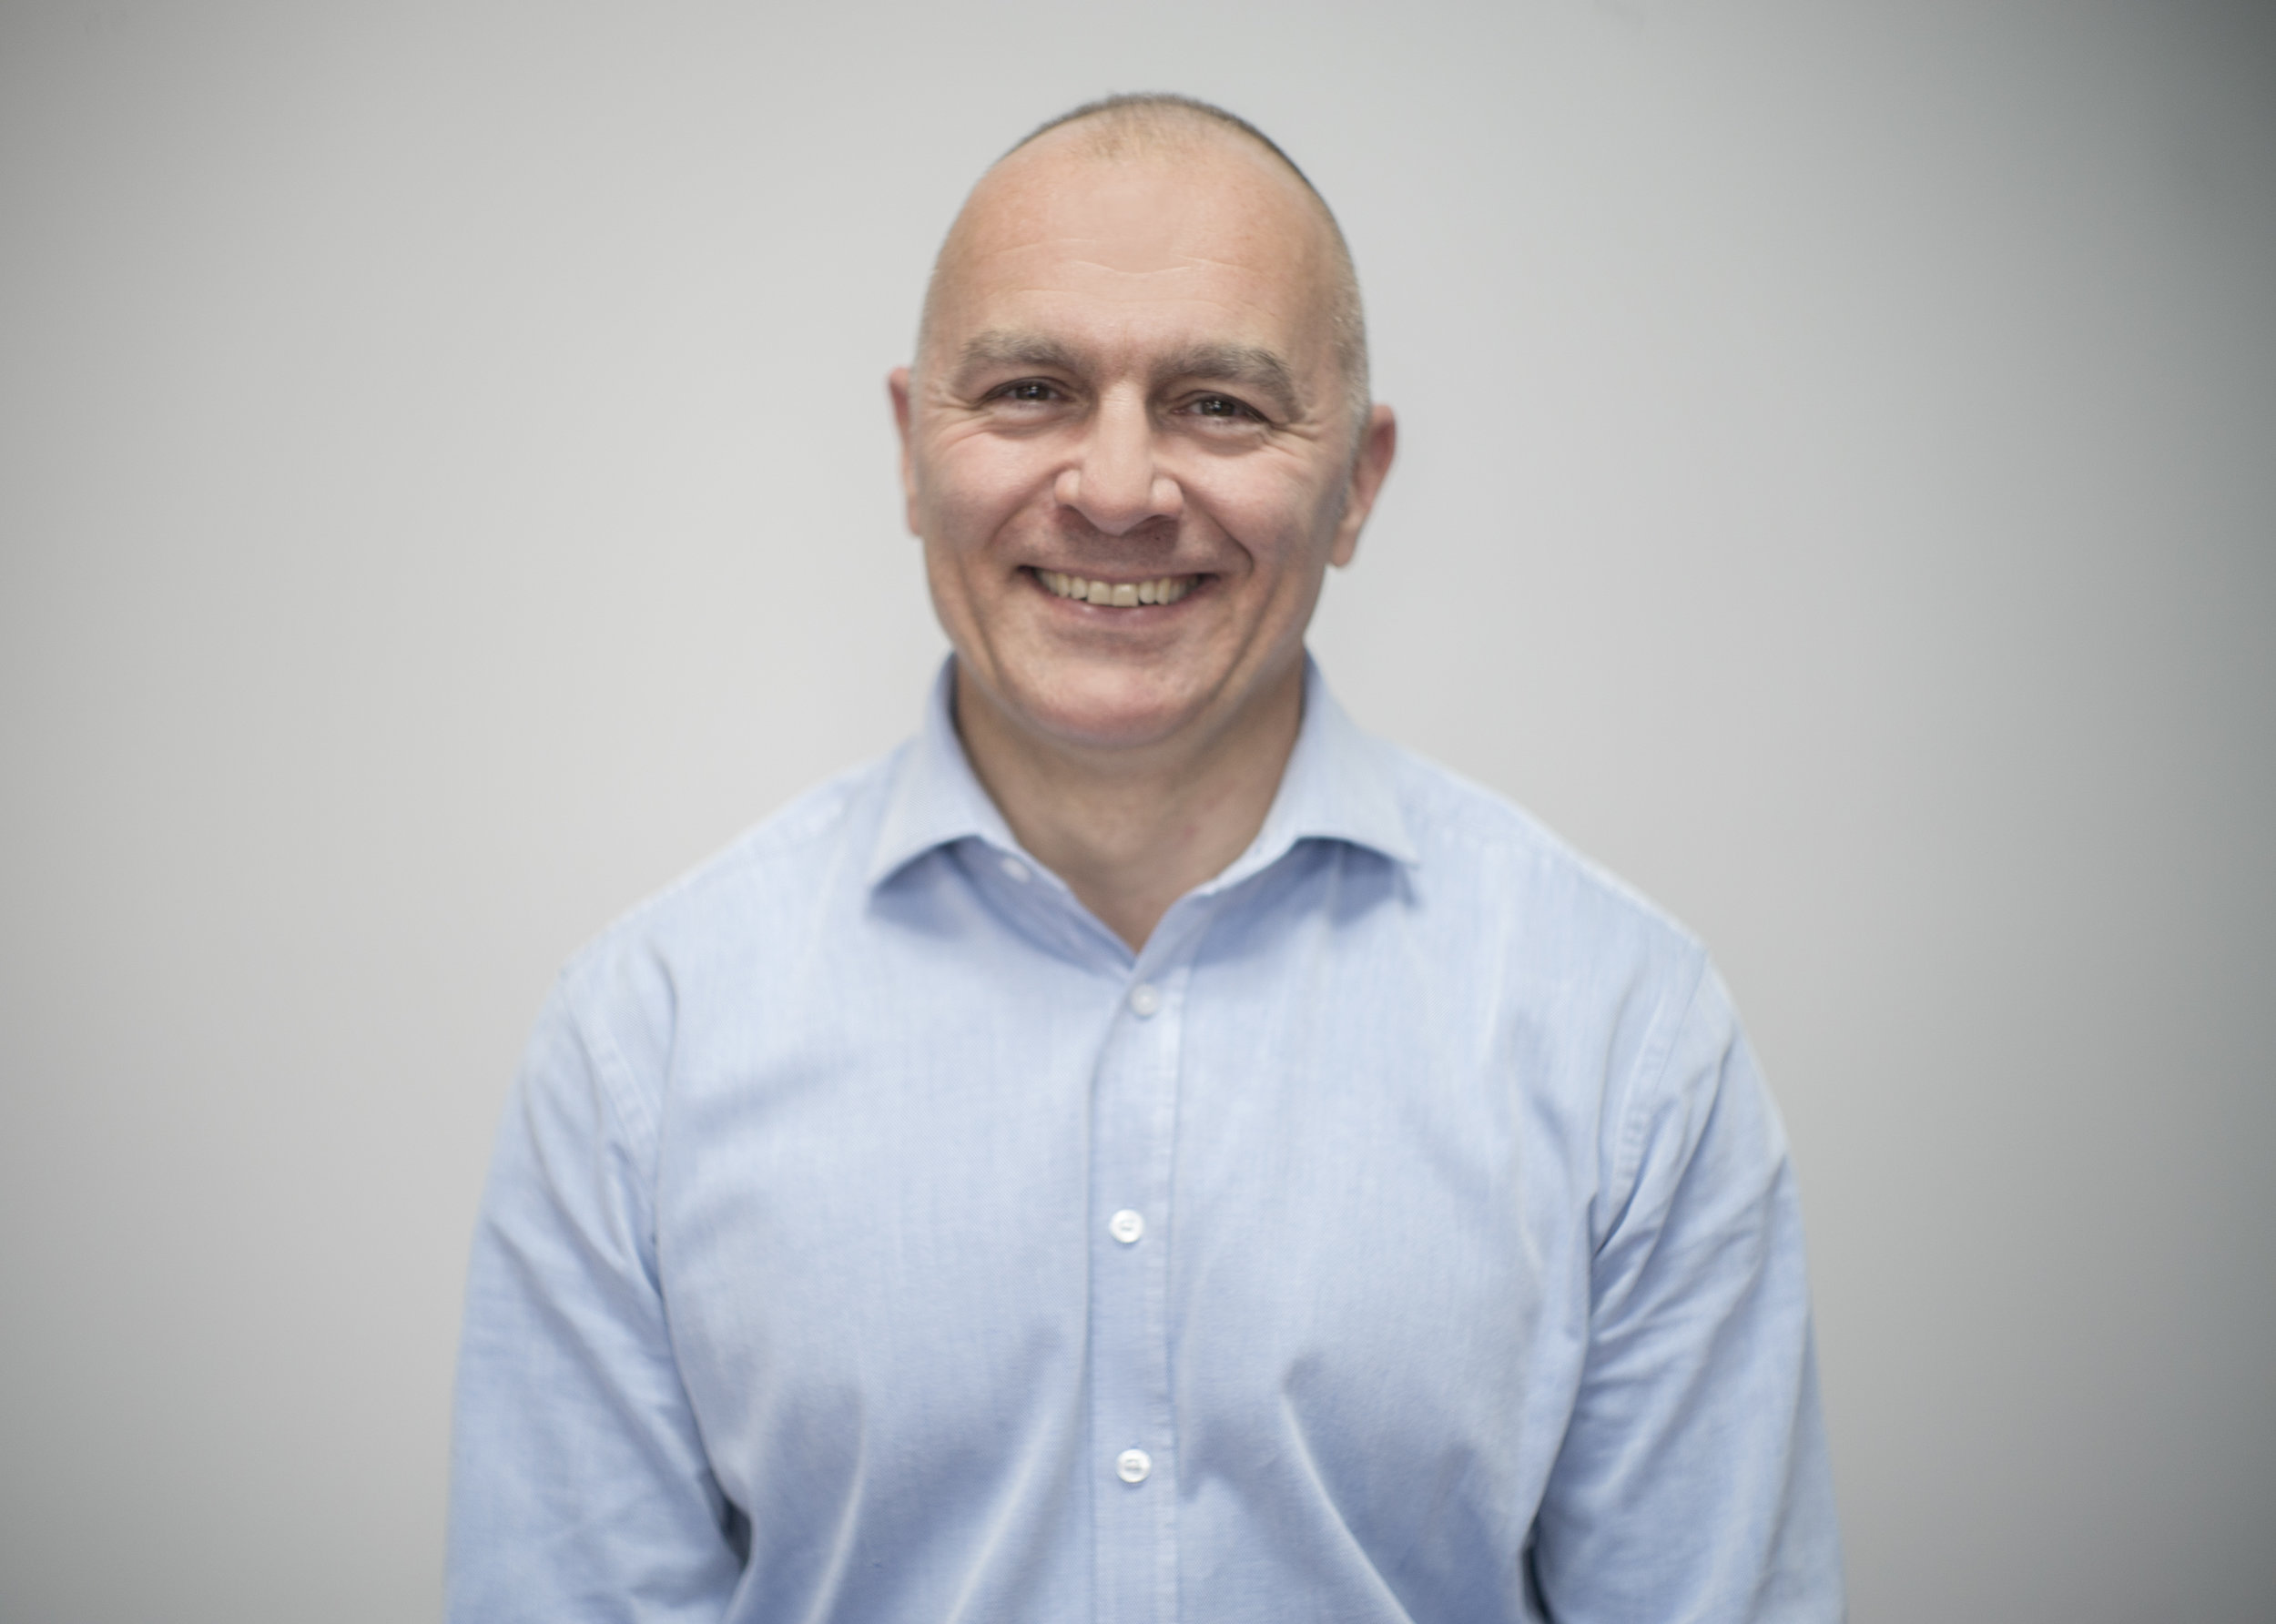 Gary Jefferies, Sales & Marketing Director, Bynx